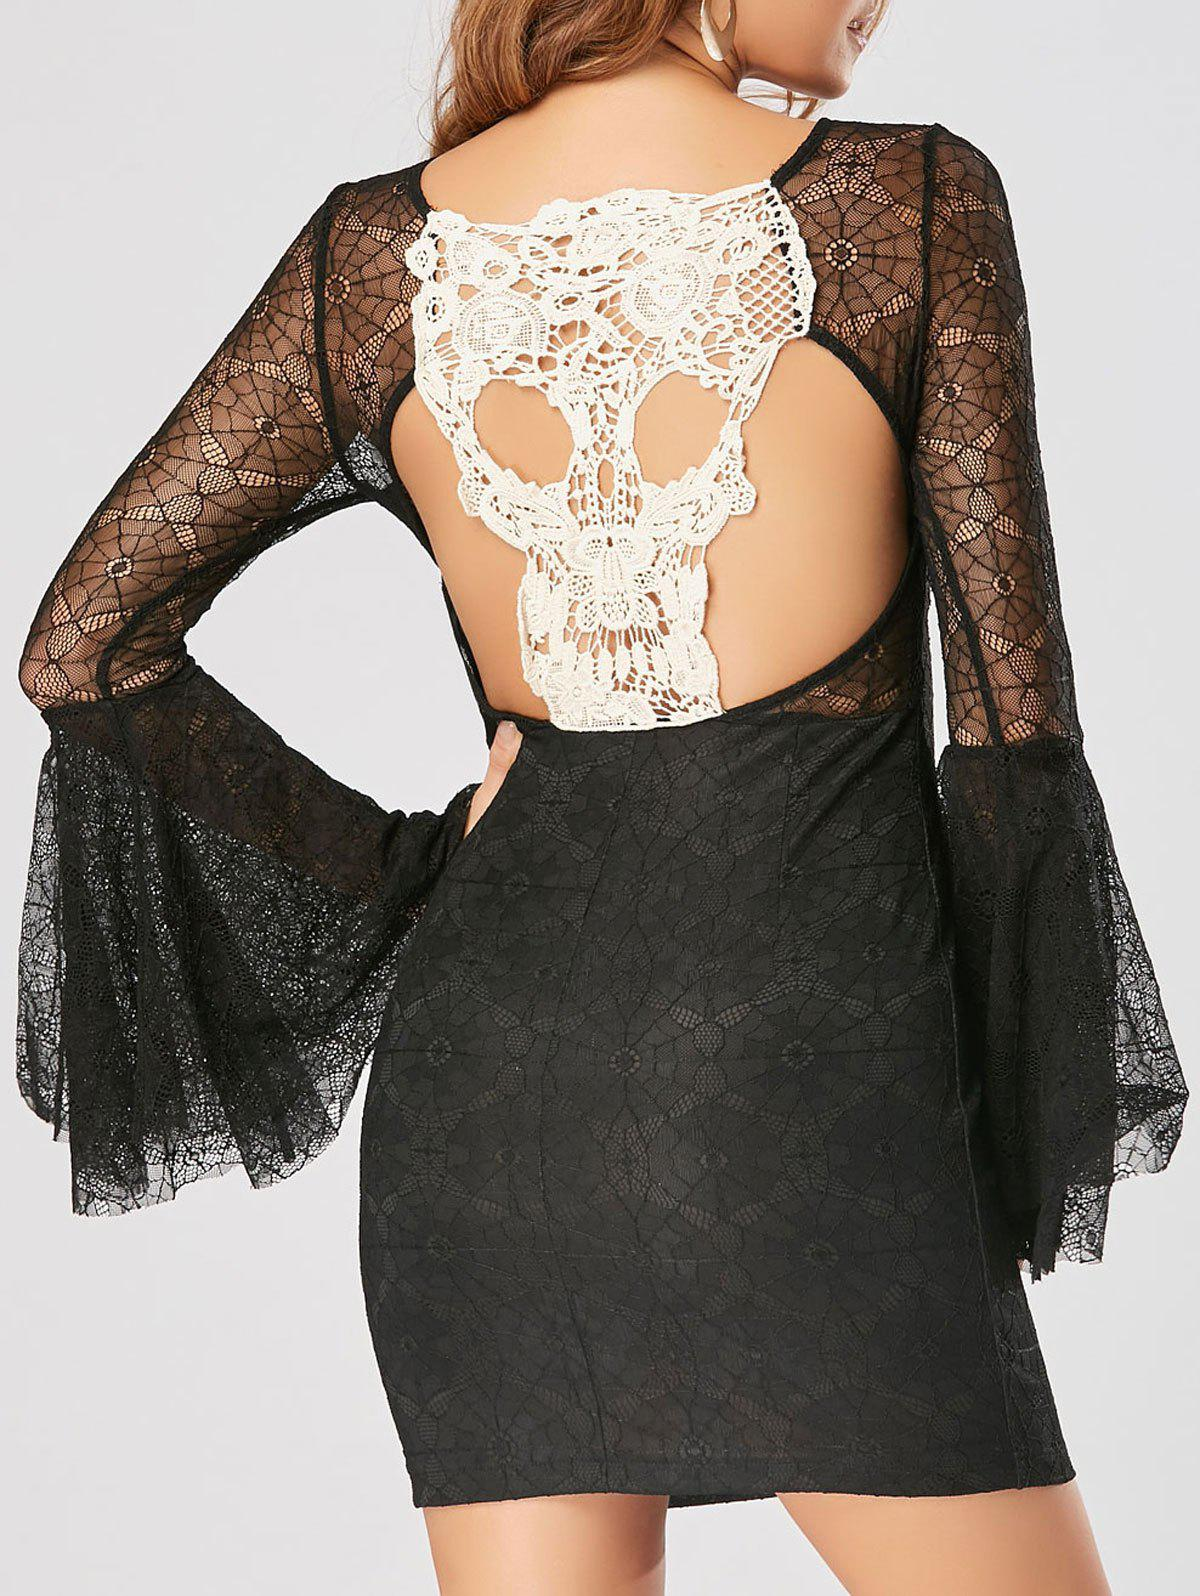 Skull Cut Out Lace Mini Bodycon Dress - BLACK 2XL